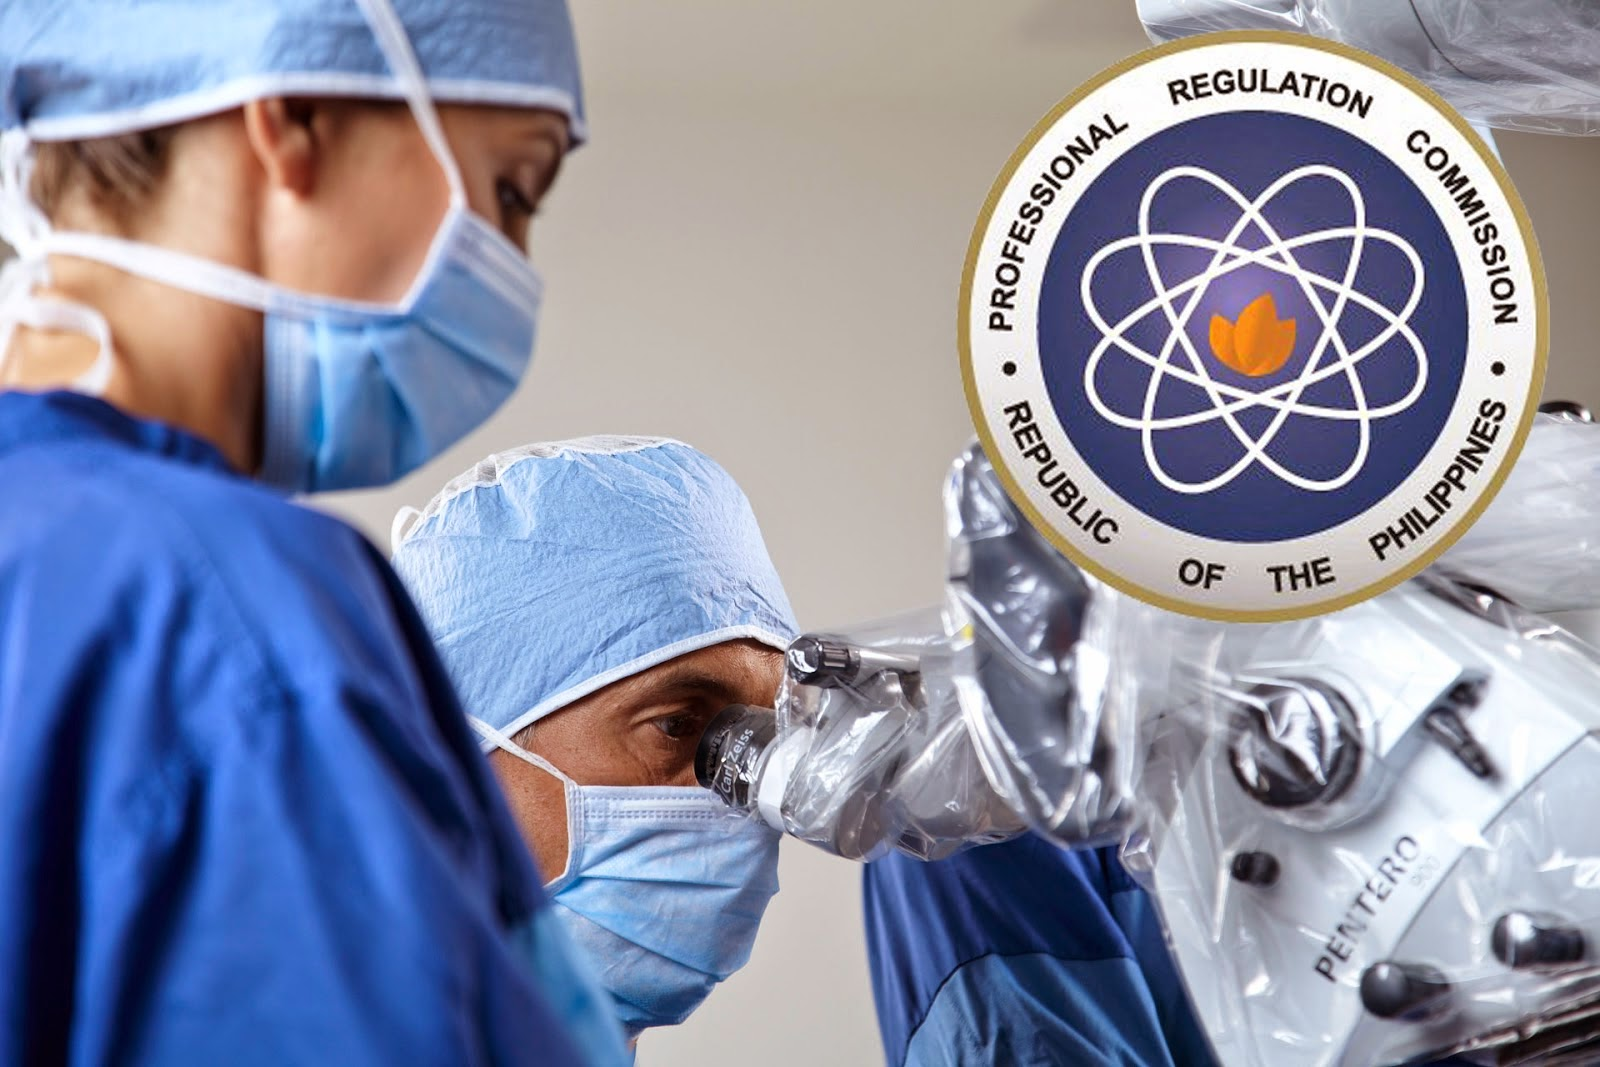 2014 Medical Technologist Licensure Examination results